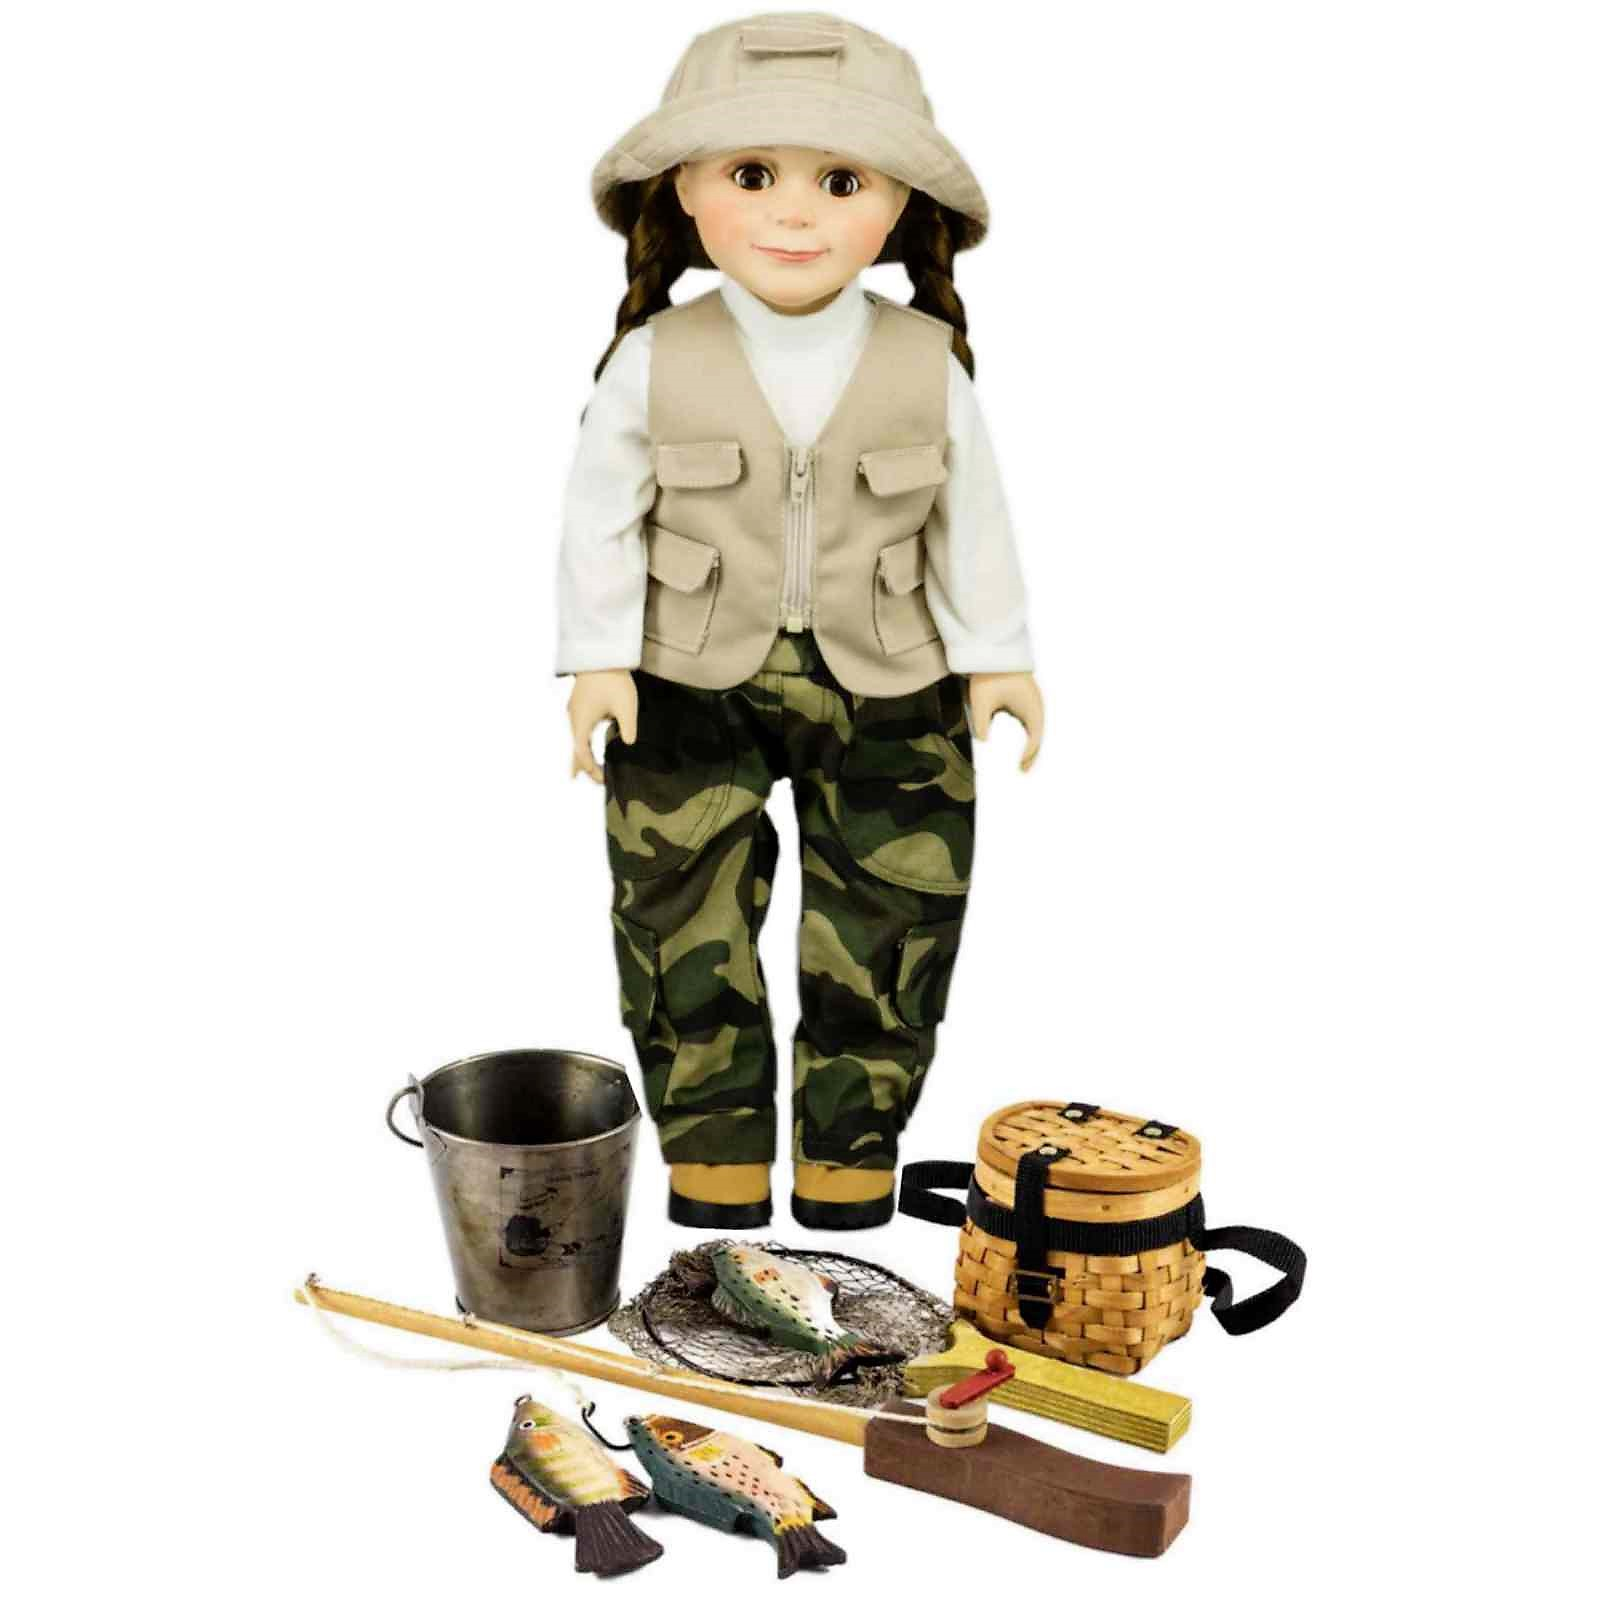 18 Inch Doll Complete Fishing Clothes, Shoes & Pole, 3 Fish, Creel, Bucket & Net